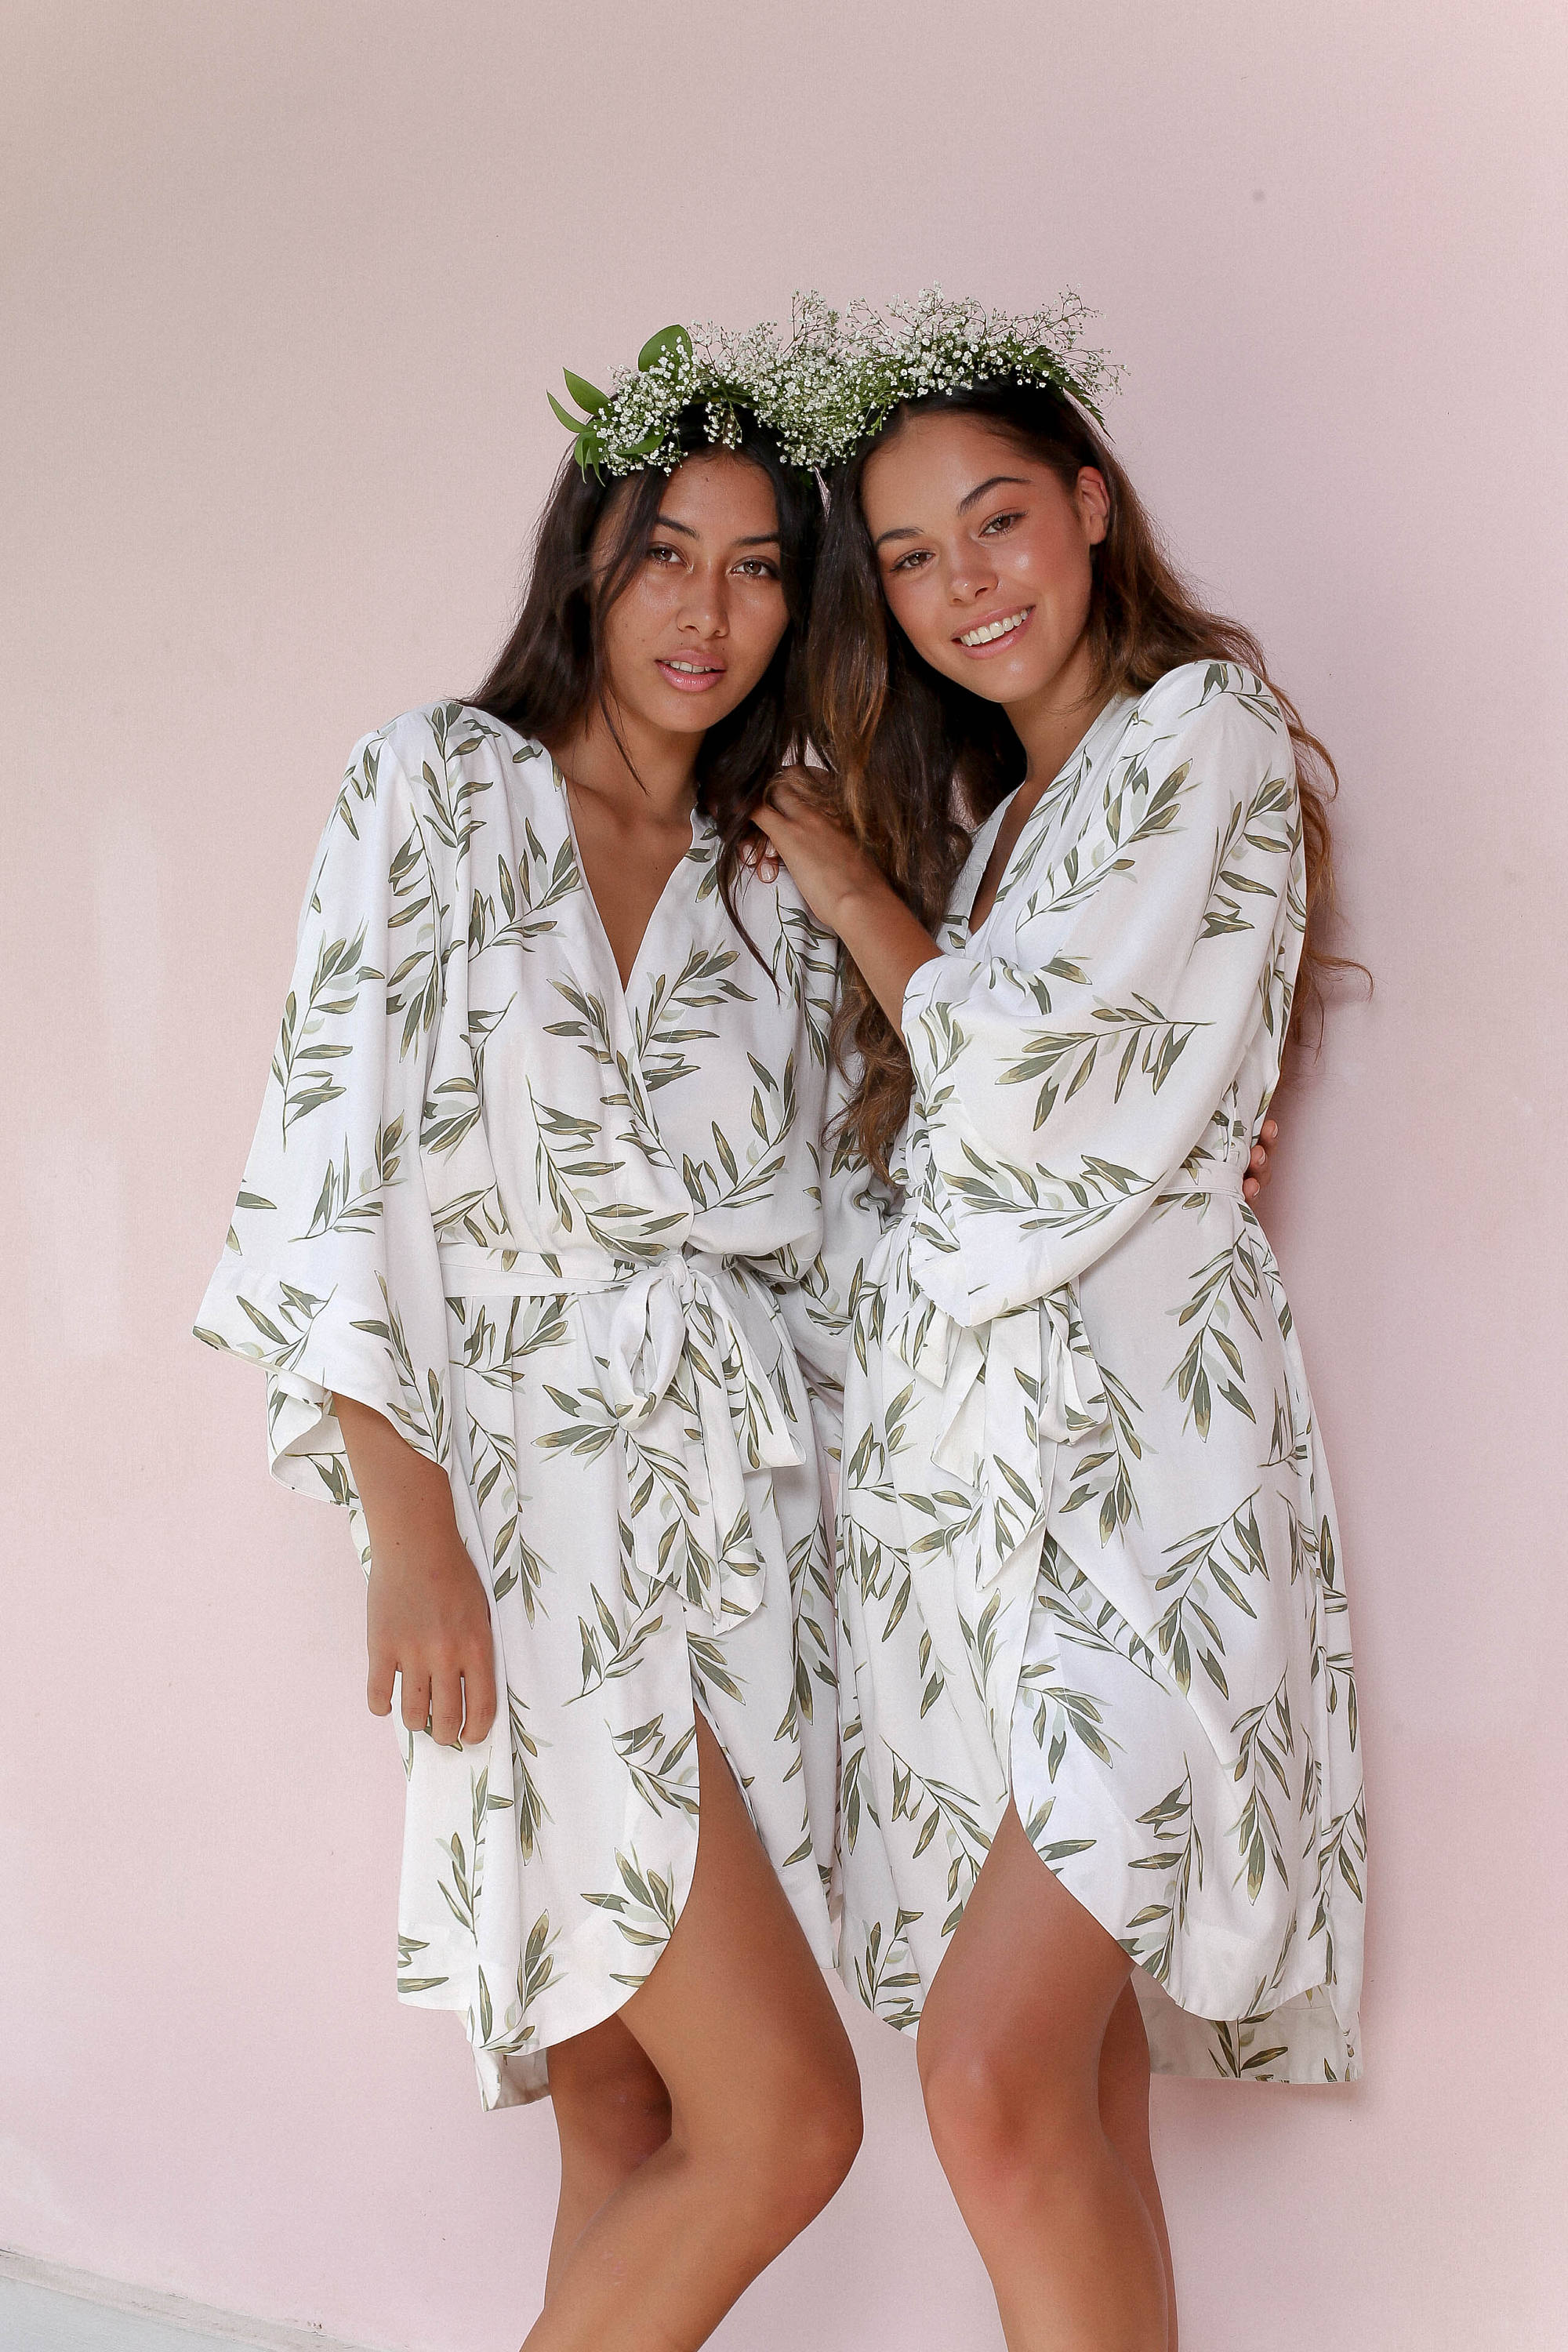 greenery-bridesmaids-robes-bridesmaids-gift